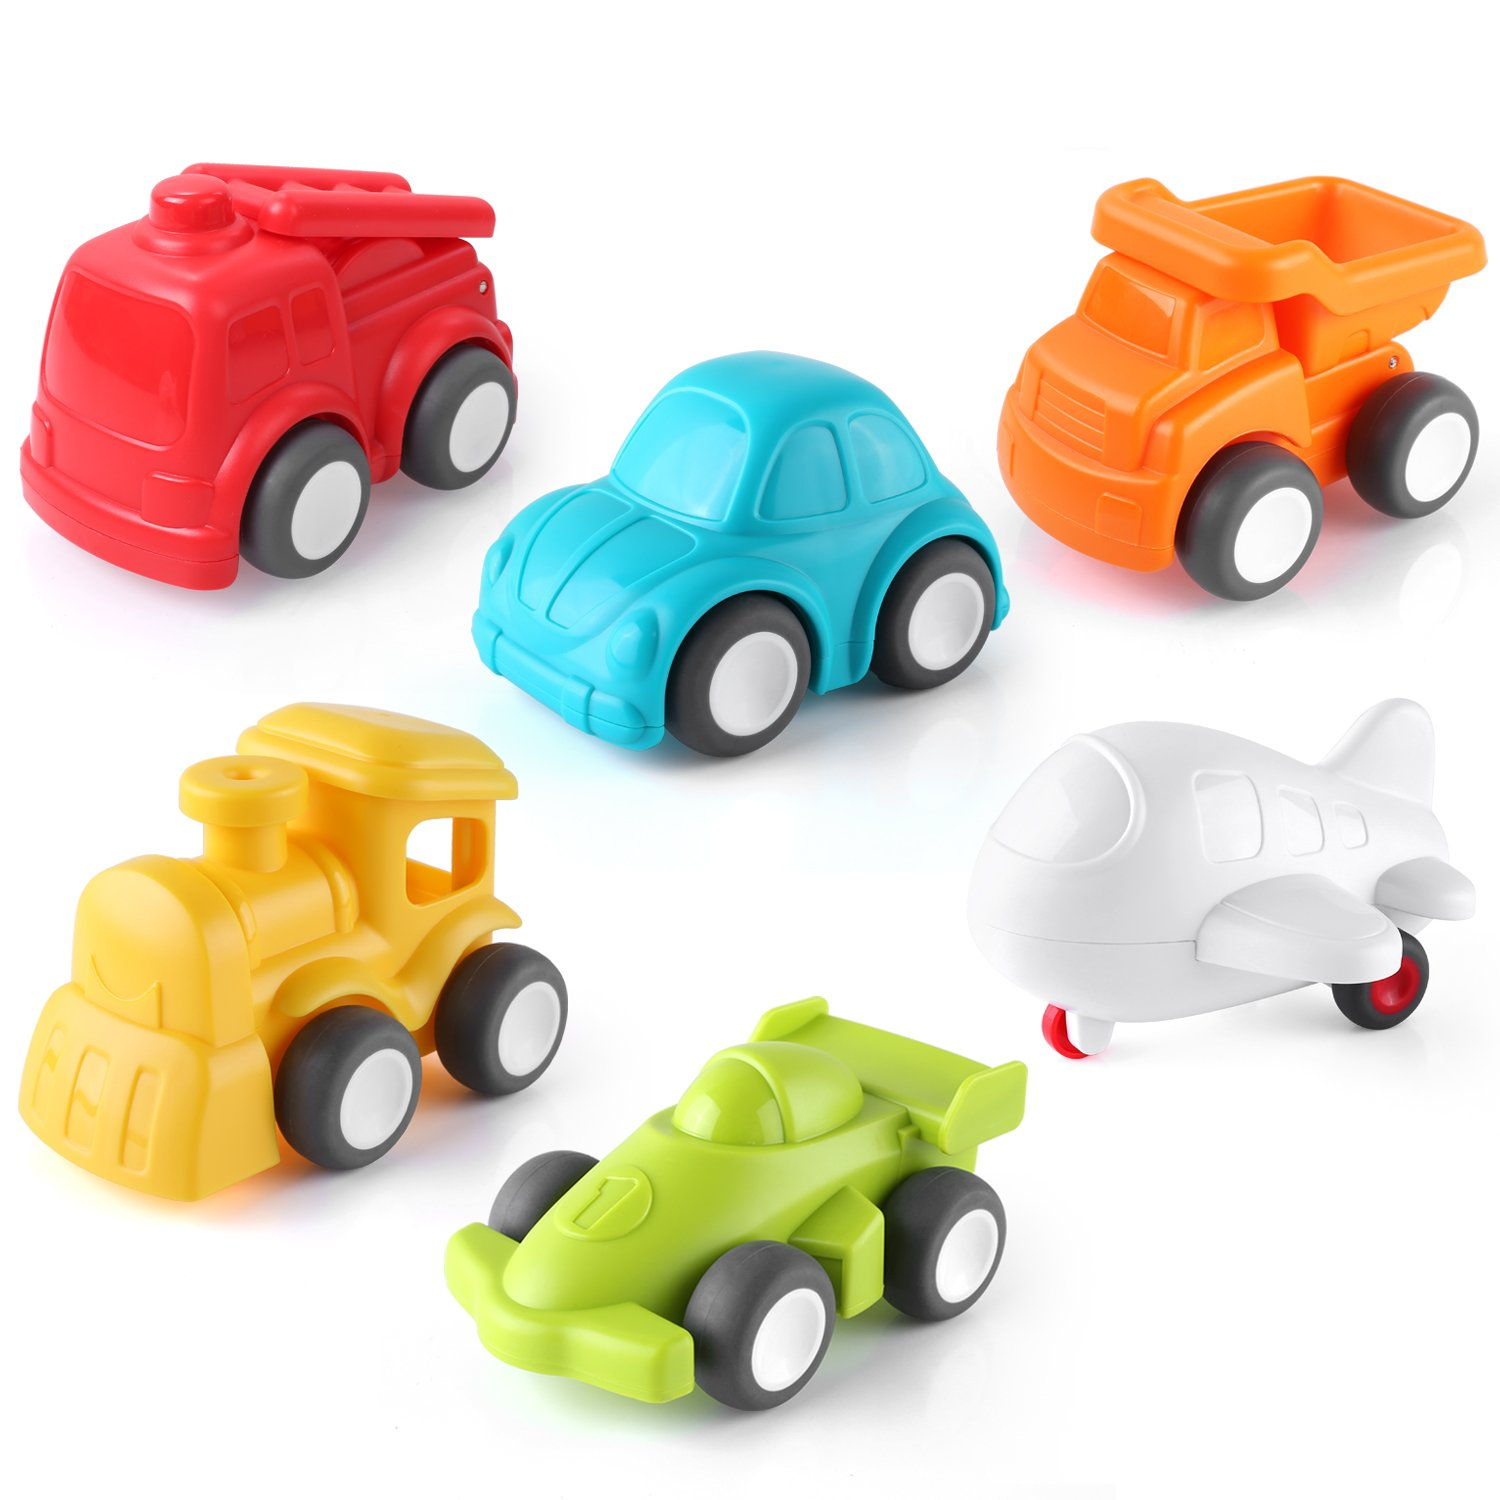 Pedy Car Toys, 6 Pack Toddler Toys Vehicles, Push and Go Cars Vehicles, Baby Toy Car for 1-2 Year Old Boys Girls